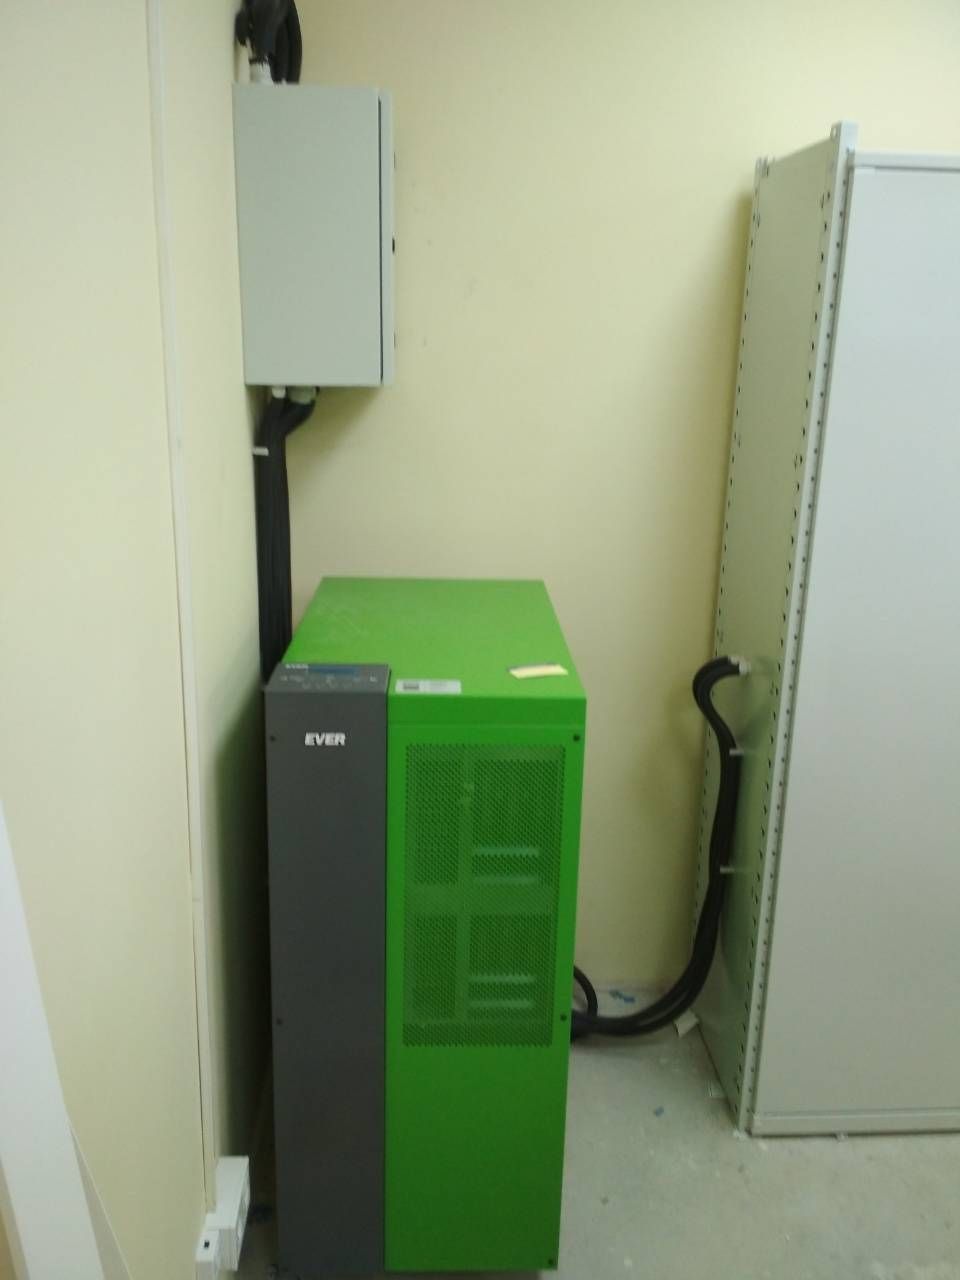 ИБП Ever Powerline Green lite 60-33 (Польша, Познань)